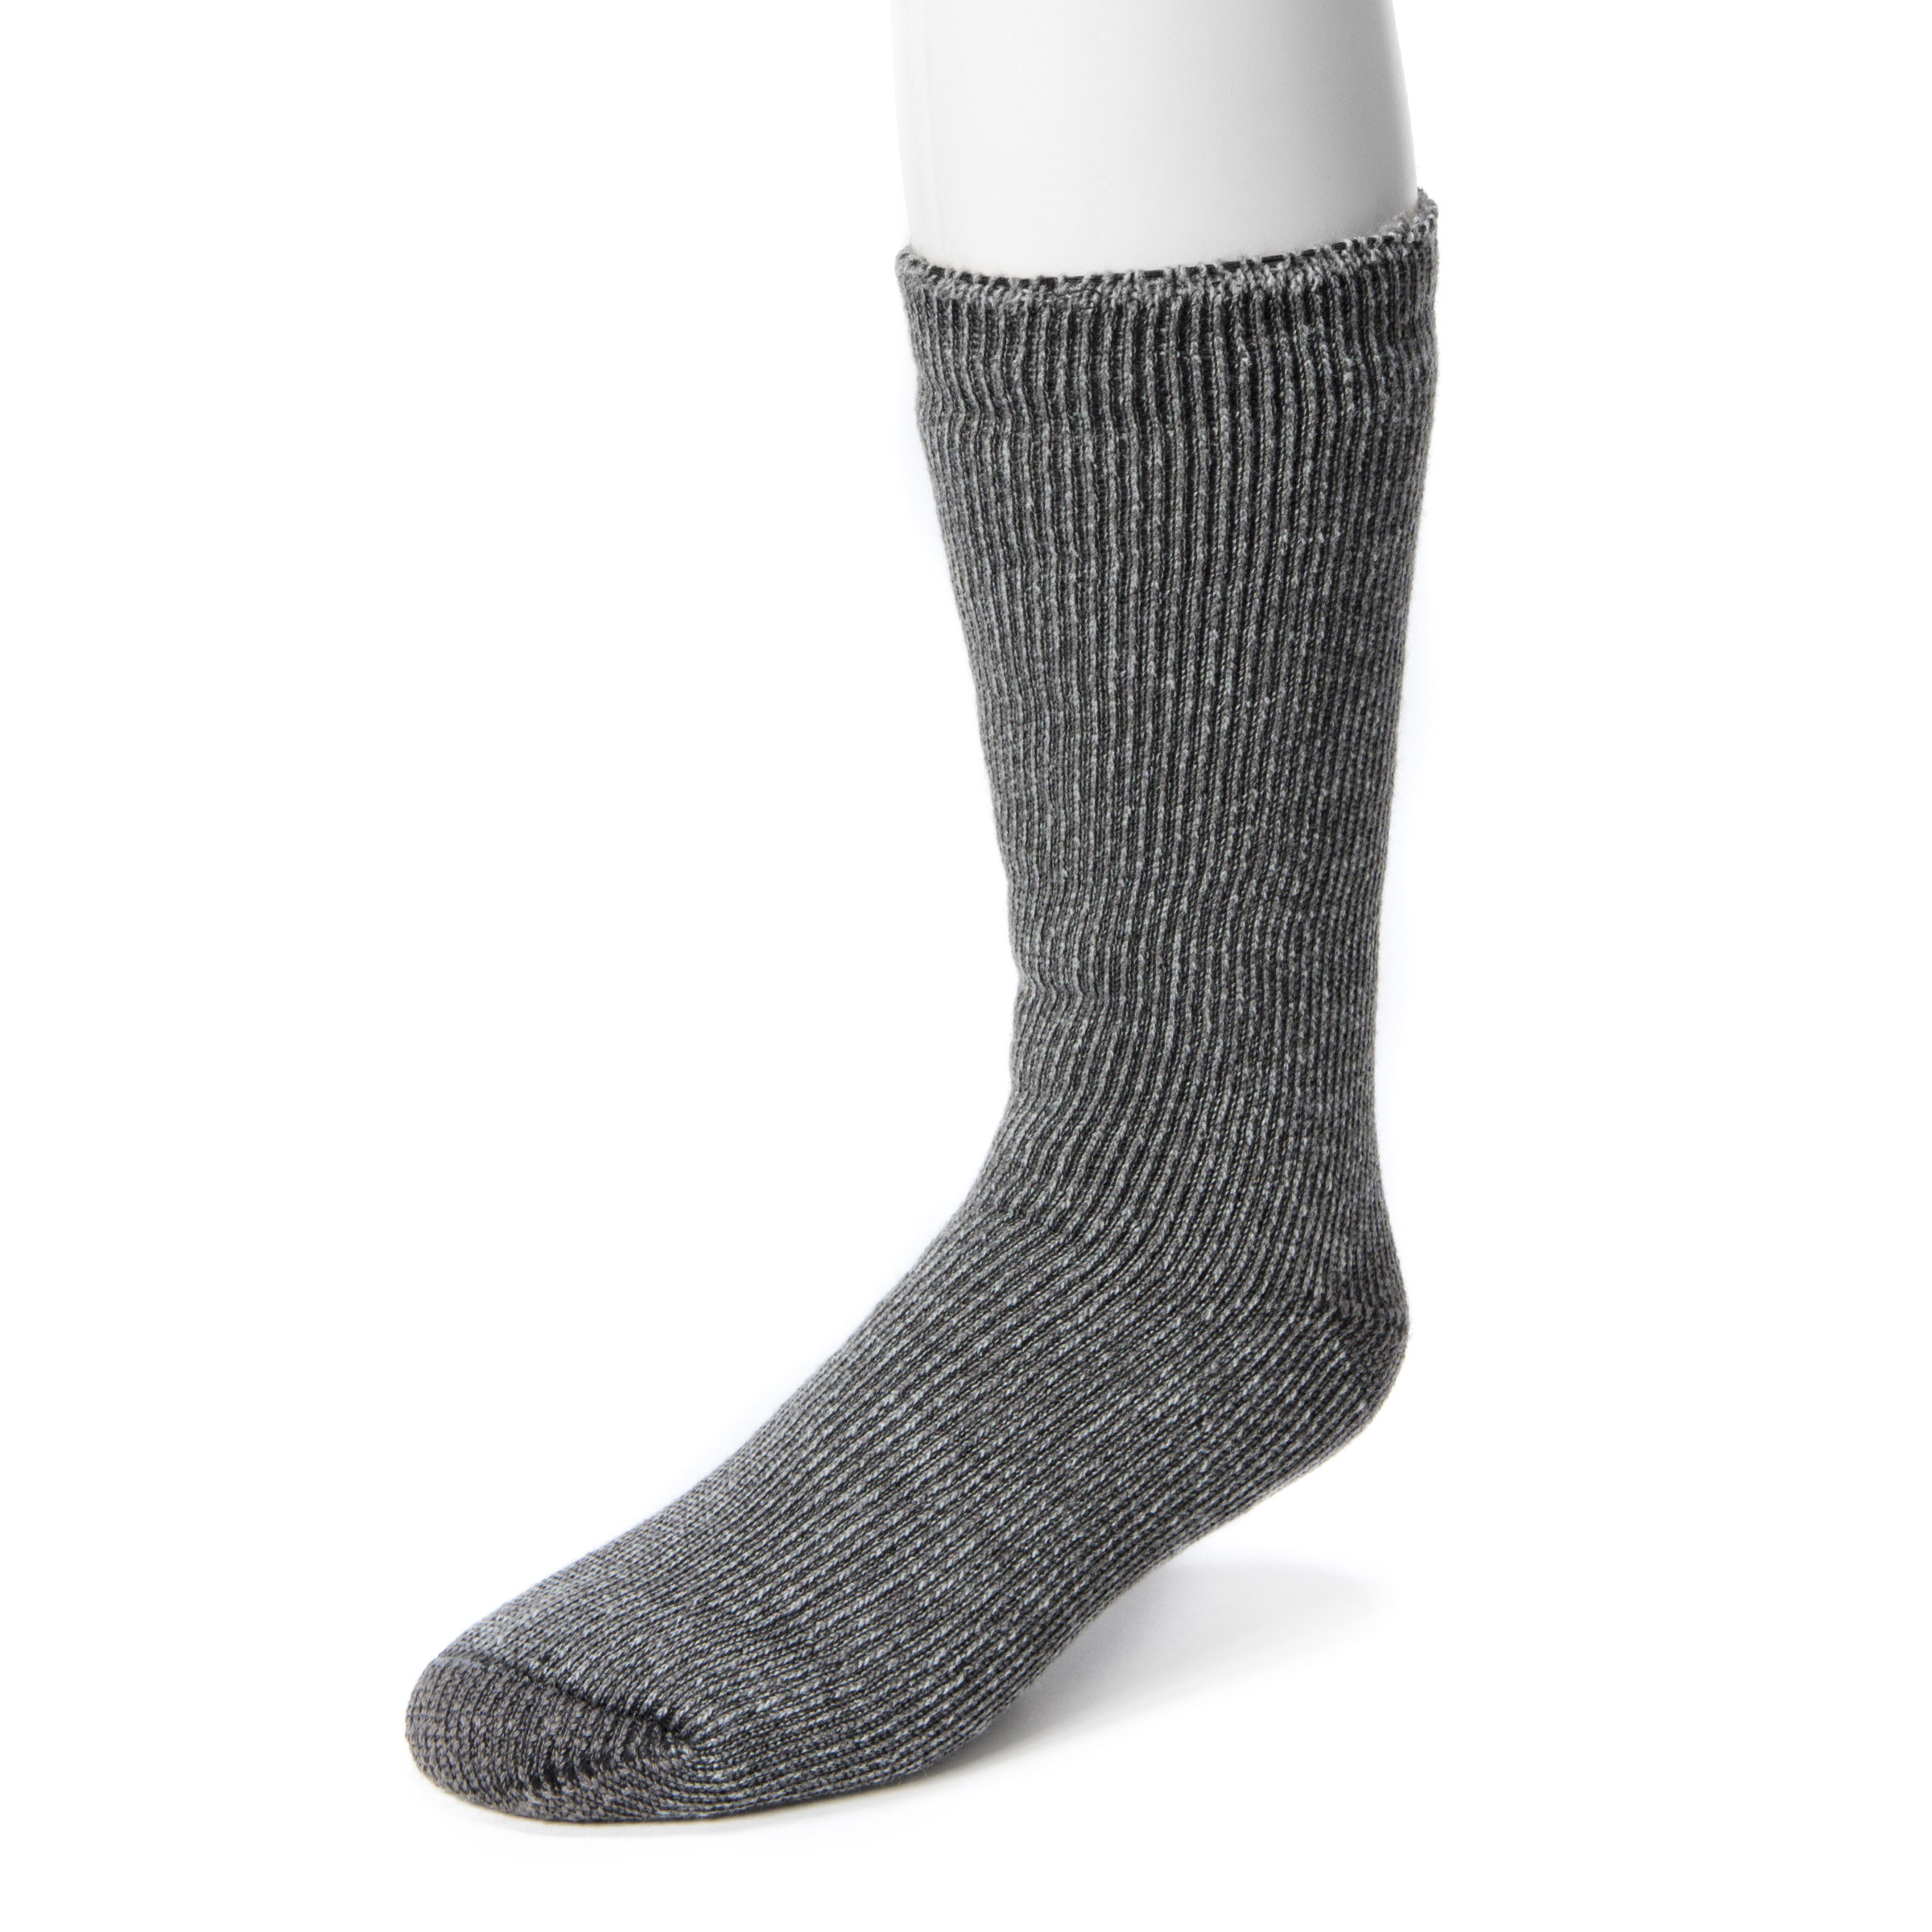 MUK LUKS Men's 1-Pair Thermal Socks by Reliable of Milwaukee